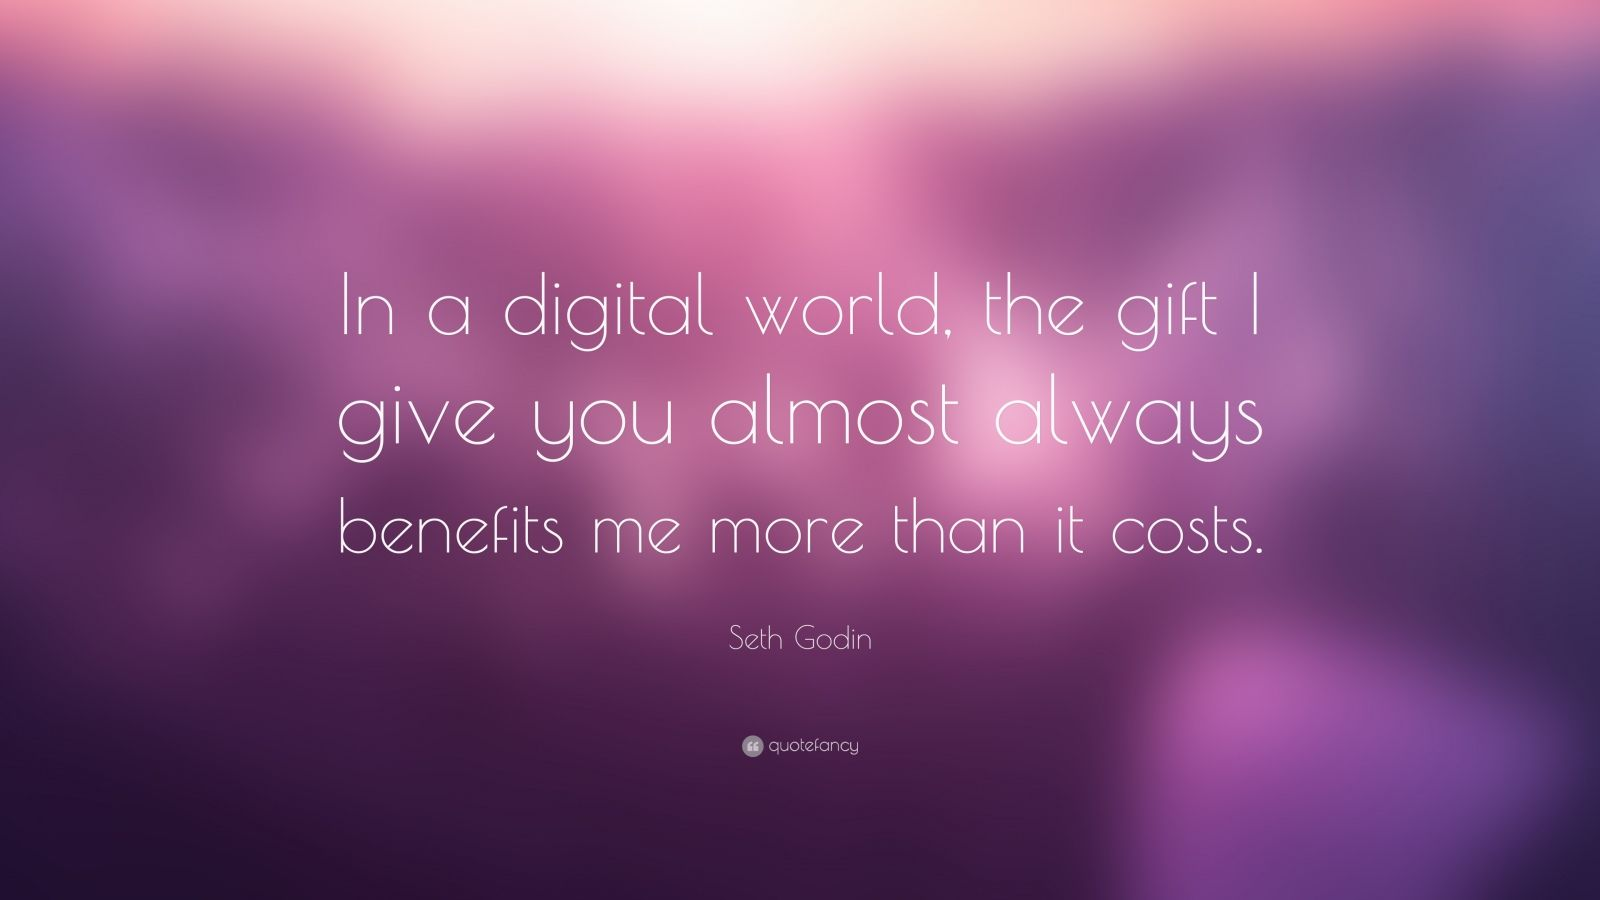 """Seth Godin Quote: """"In a digital world, the gift I give you almost always benefits me more than it costs."""""""